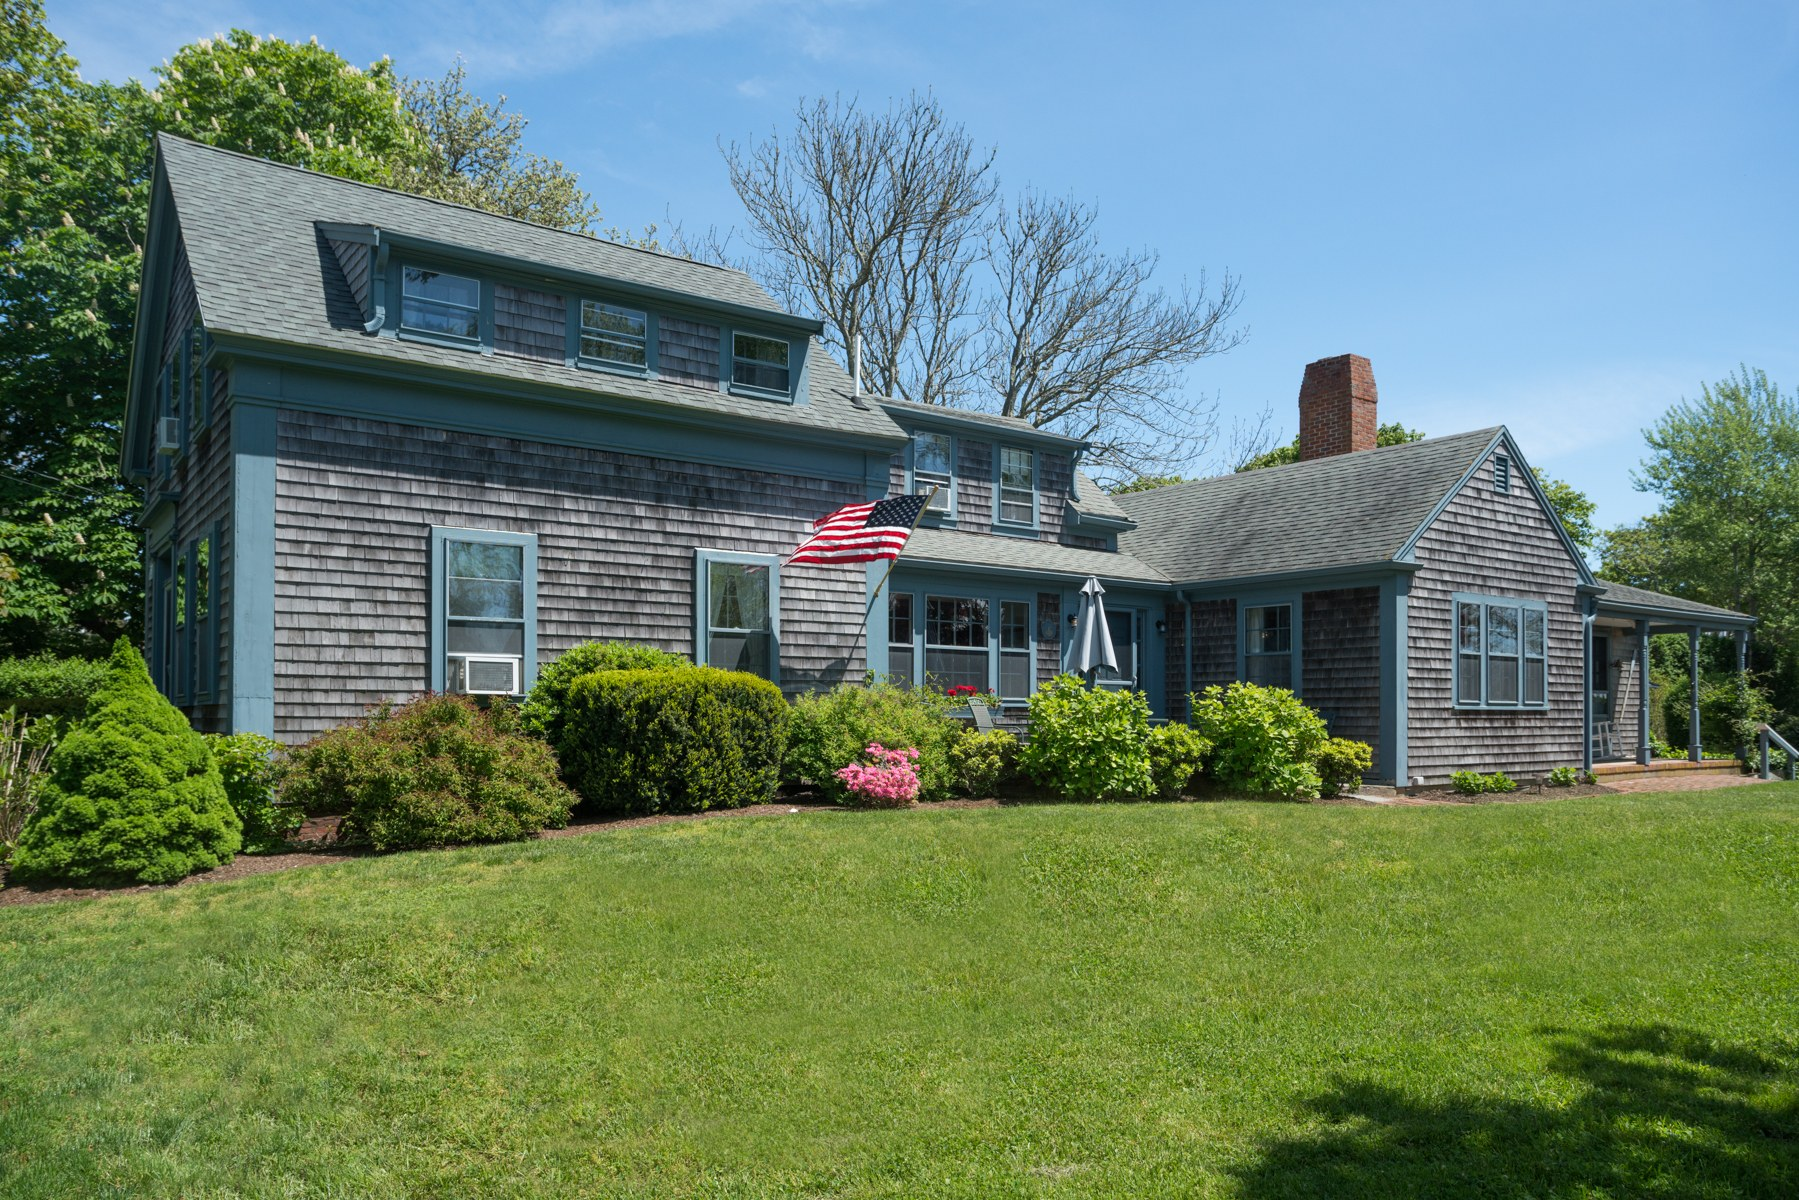 Single Family Home for Sale at OLD VILLAGE 64 Silver Leaf Avenue, Chatham, Massachusetts, 02633 New England, United States